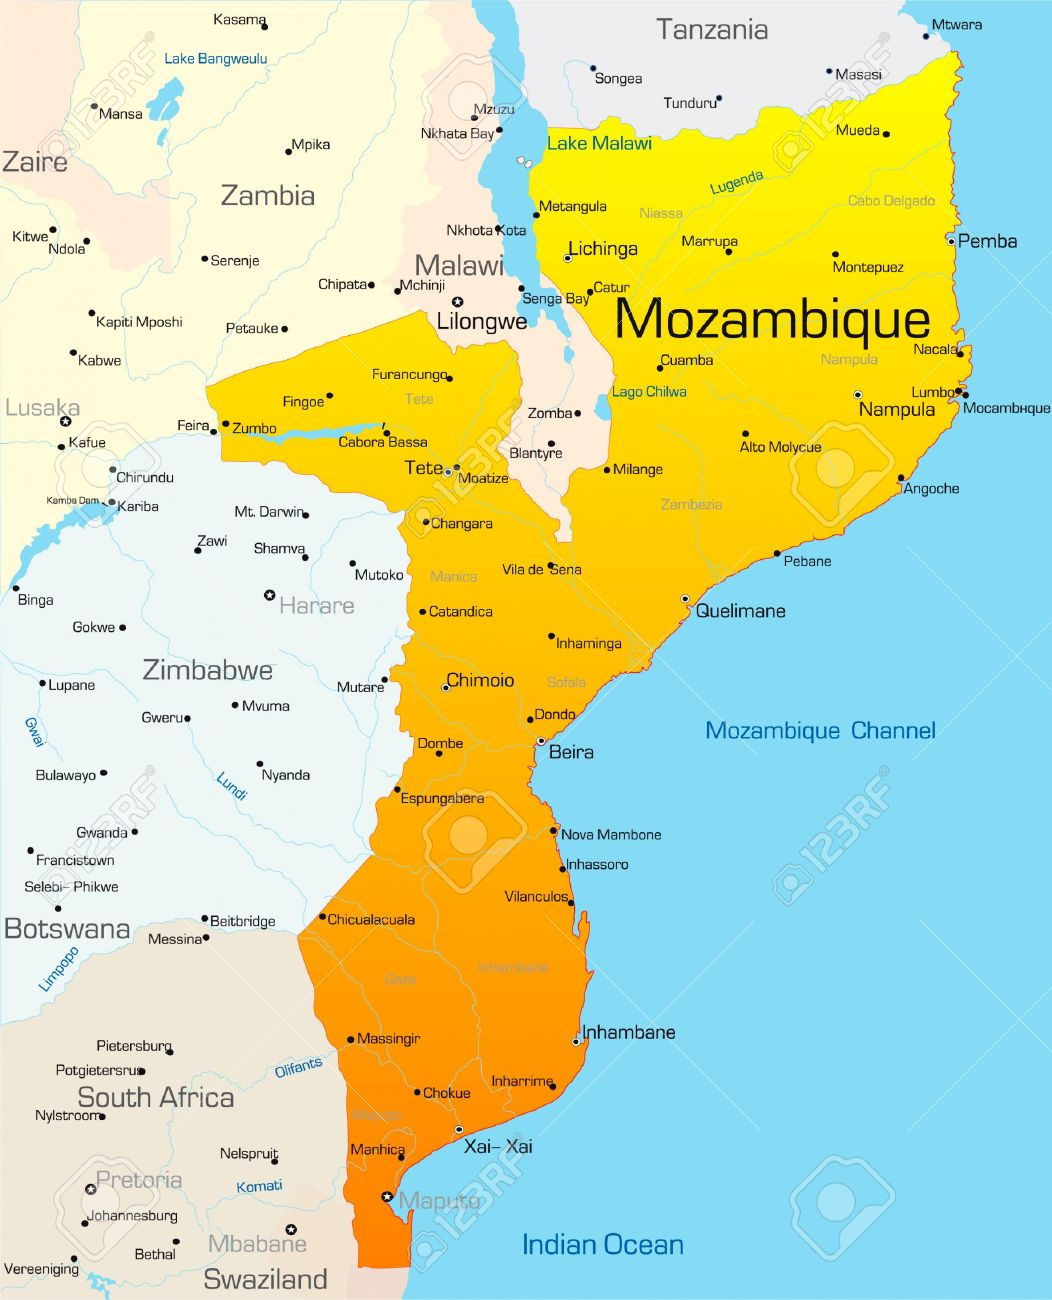 Mozambique: What is next after LNG?